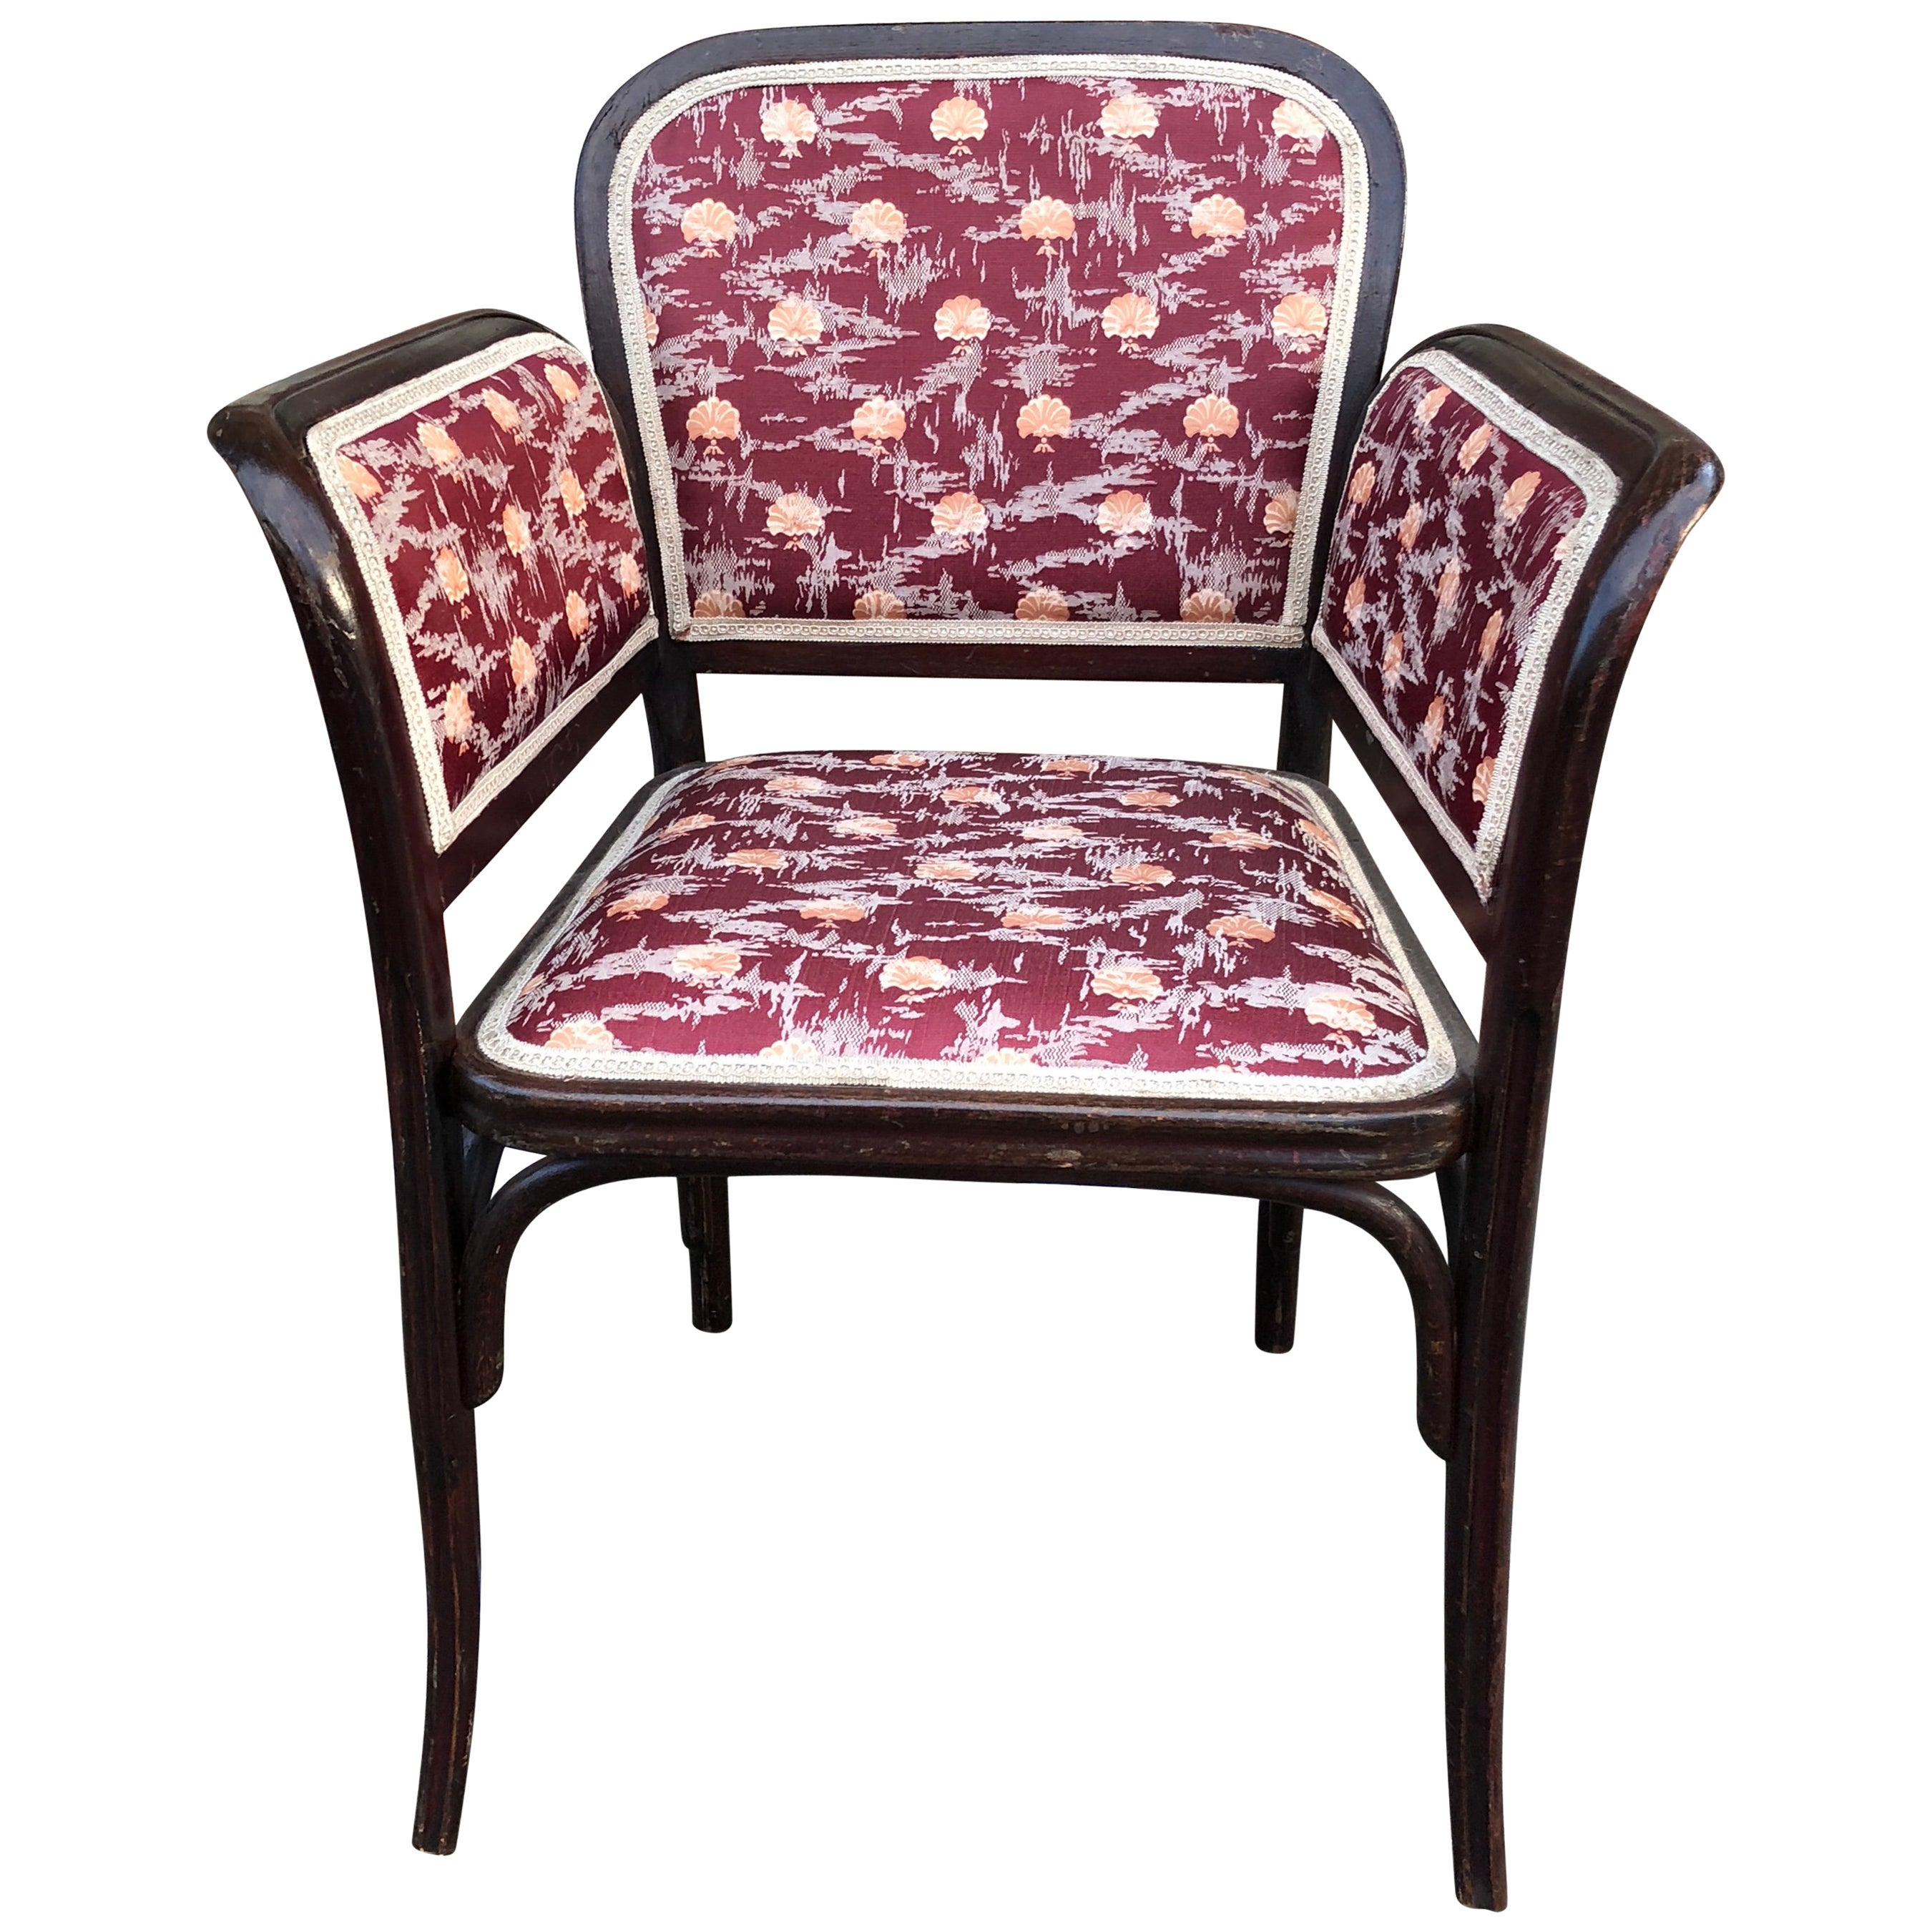 Thonet Secessionist Armchair Attributed to Otto Wagner